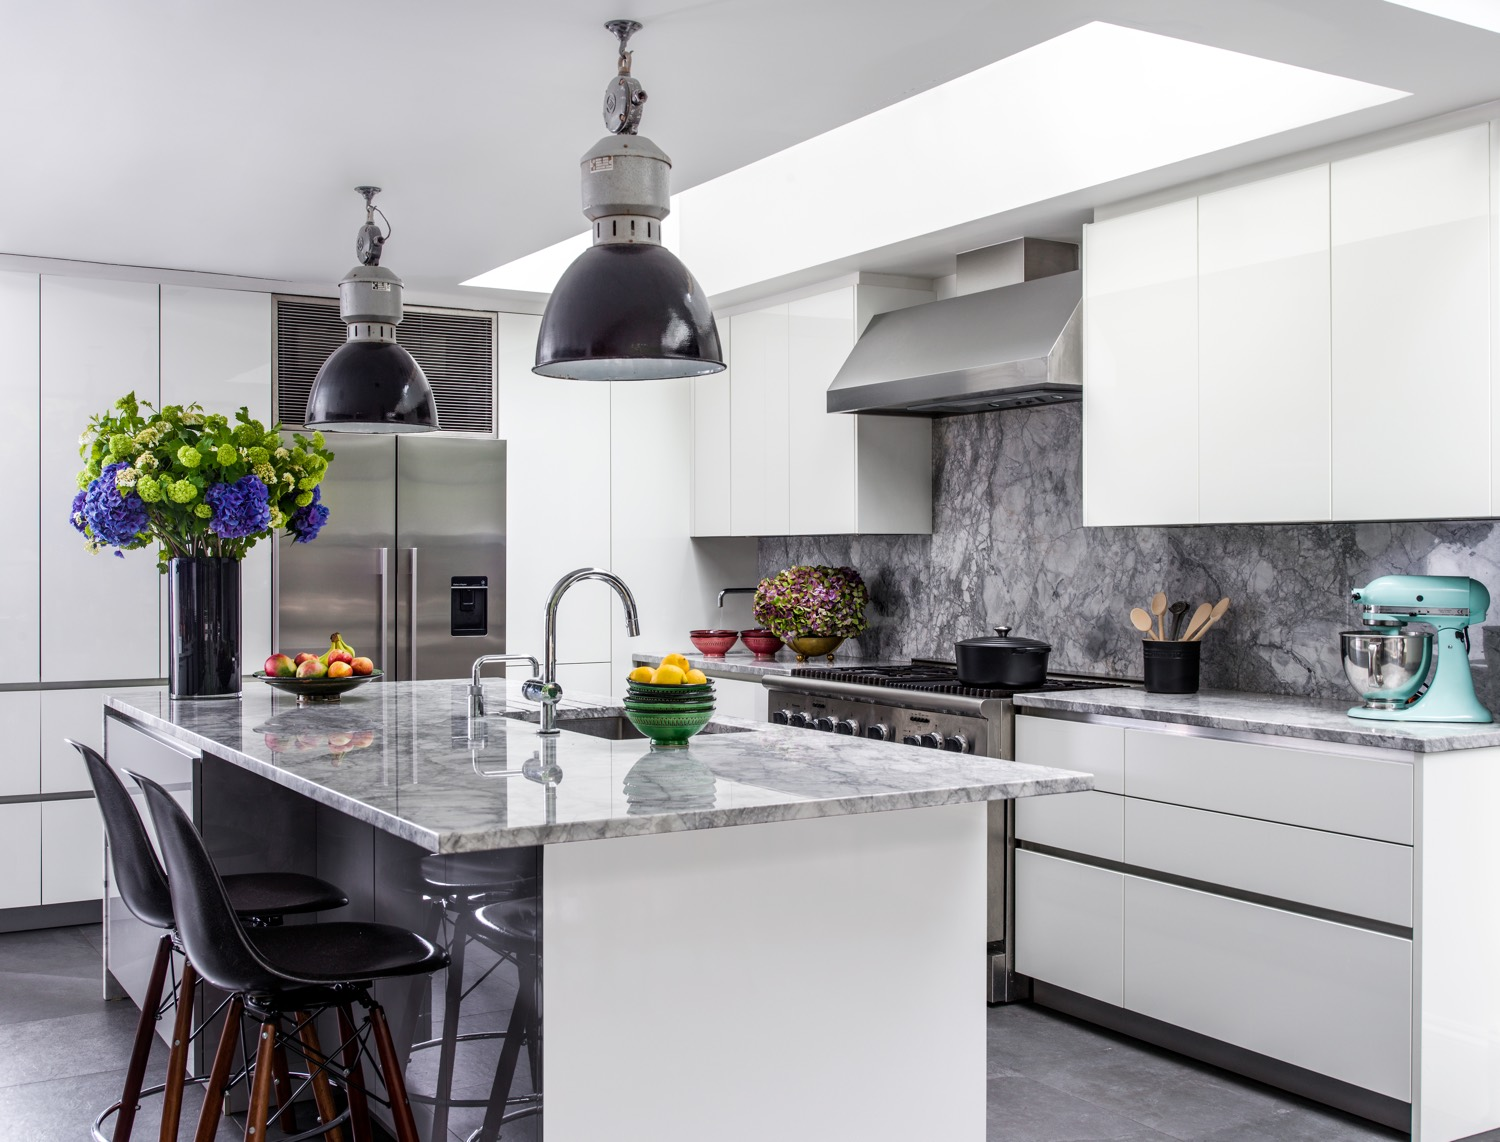 A North American style Kitchen with full size appliances and gloss lacquer cabinets.